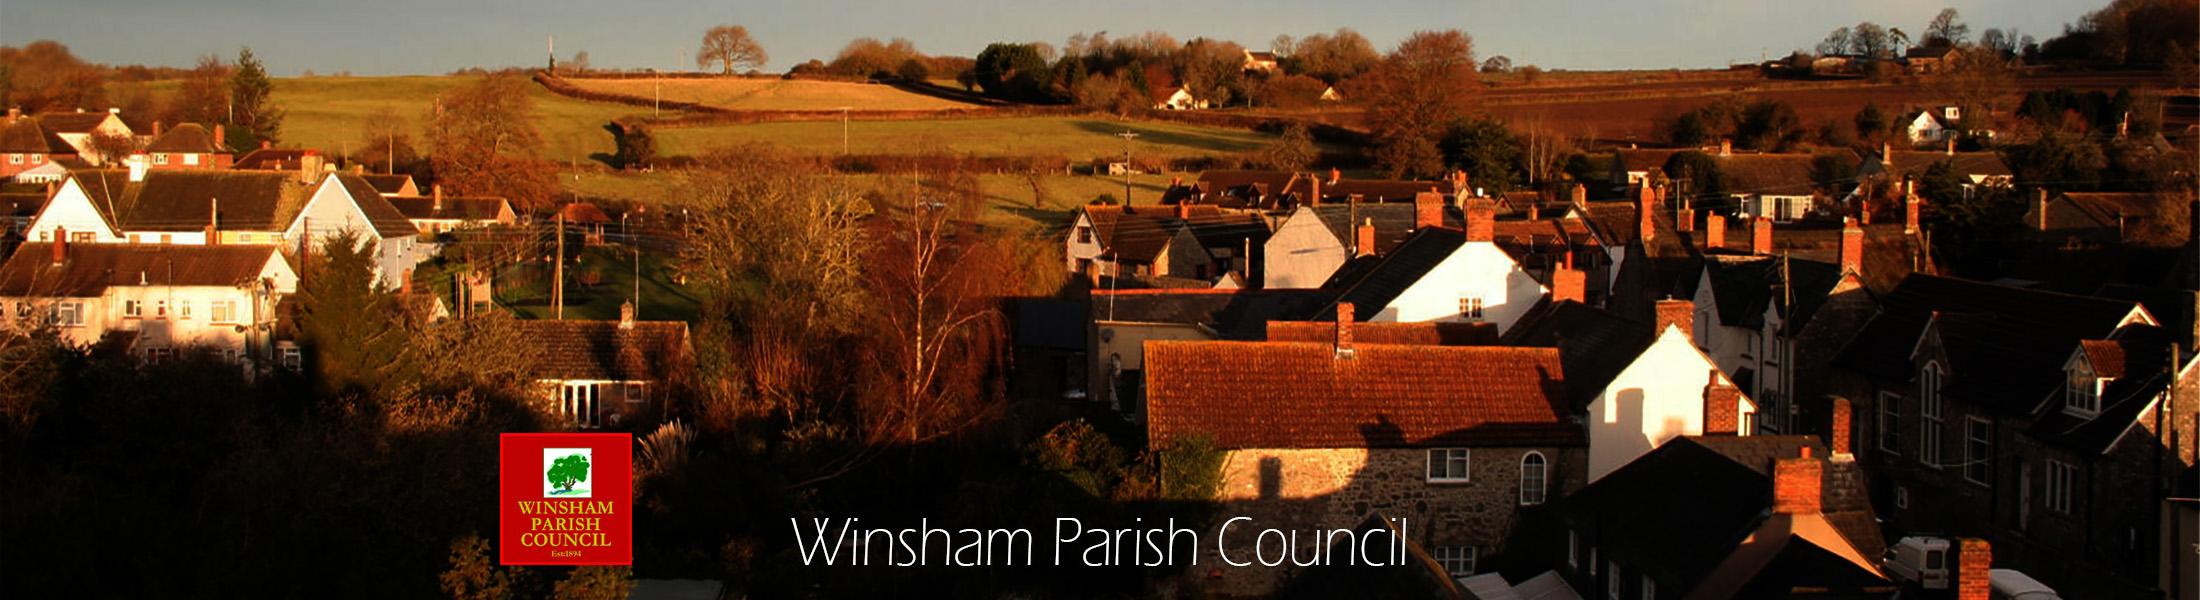 Header Image for Winsham Parish Council